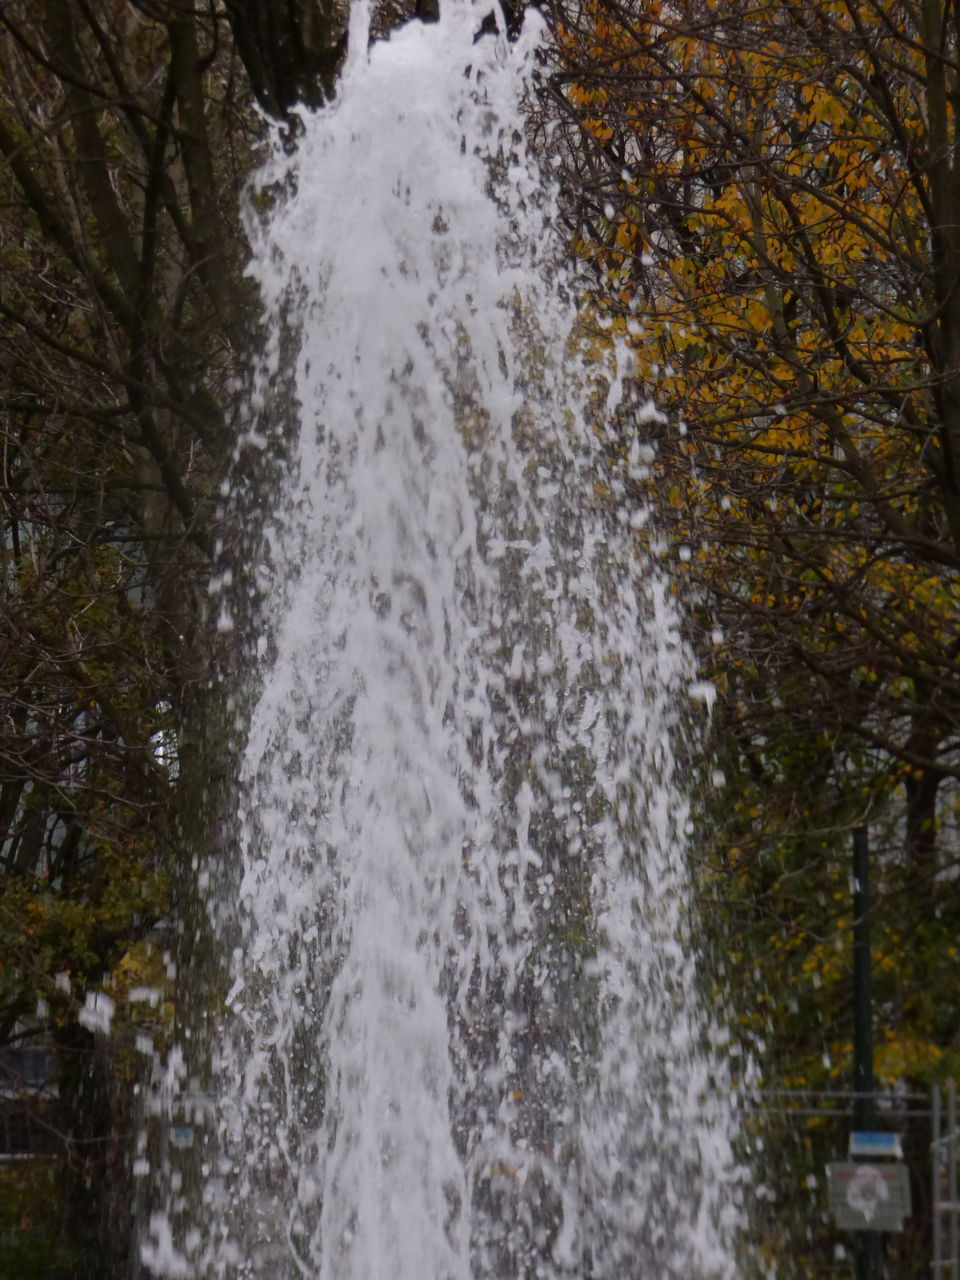 motion, tree, nature, water, long exposure, beauty in nature, outdoors, day, no people, spraying, scenics, blurred motion, power in nature, forest, waterfall, close-up